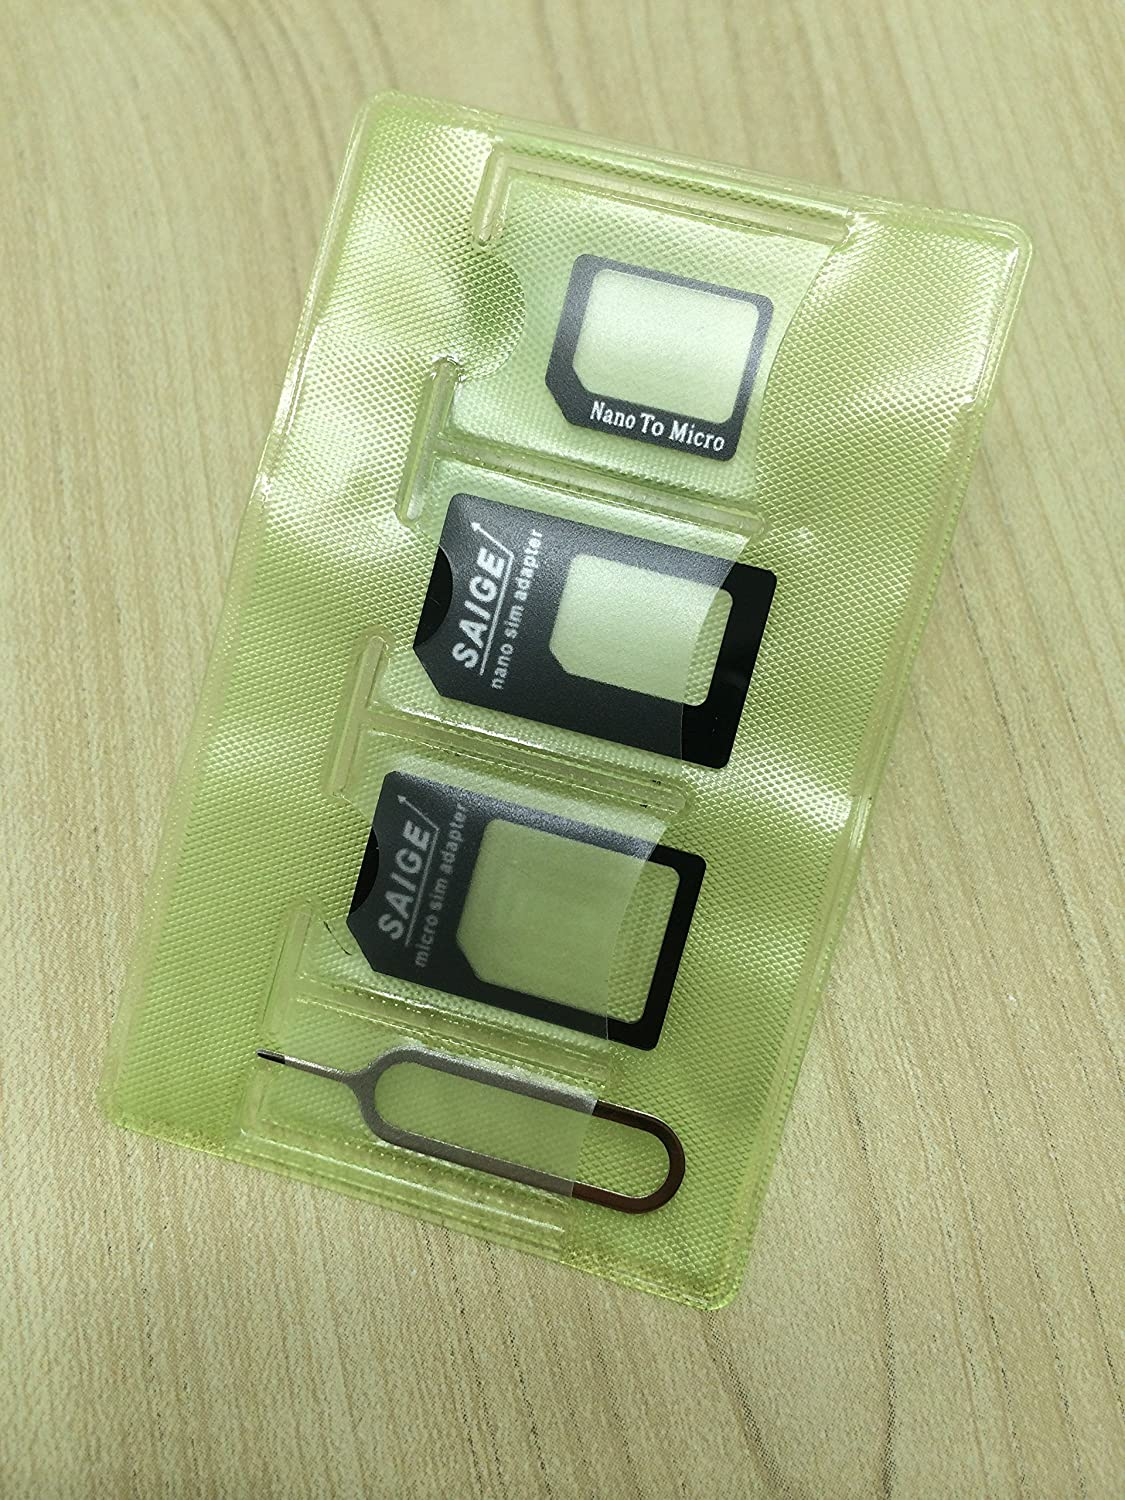 1 Iphone Eject Pin tool as picture display. 4 in 1 SIM Card adapter Storage Holder with 3 pcs Adapters Noting:NO Memory card Black 4 in 1